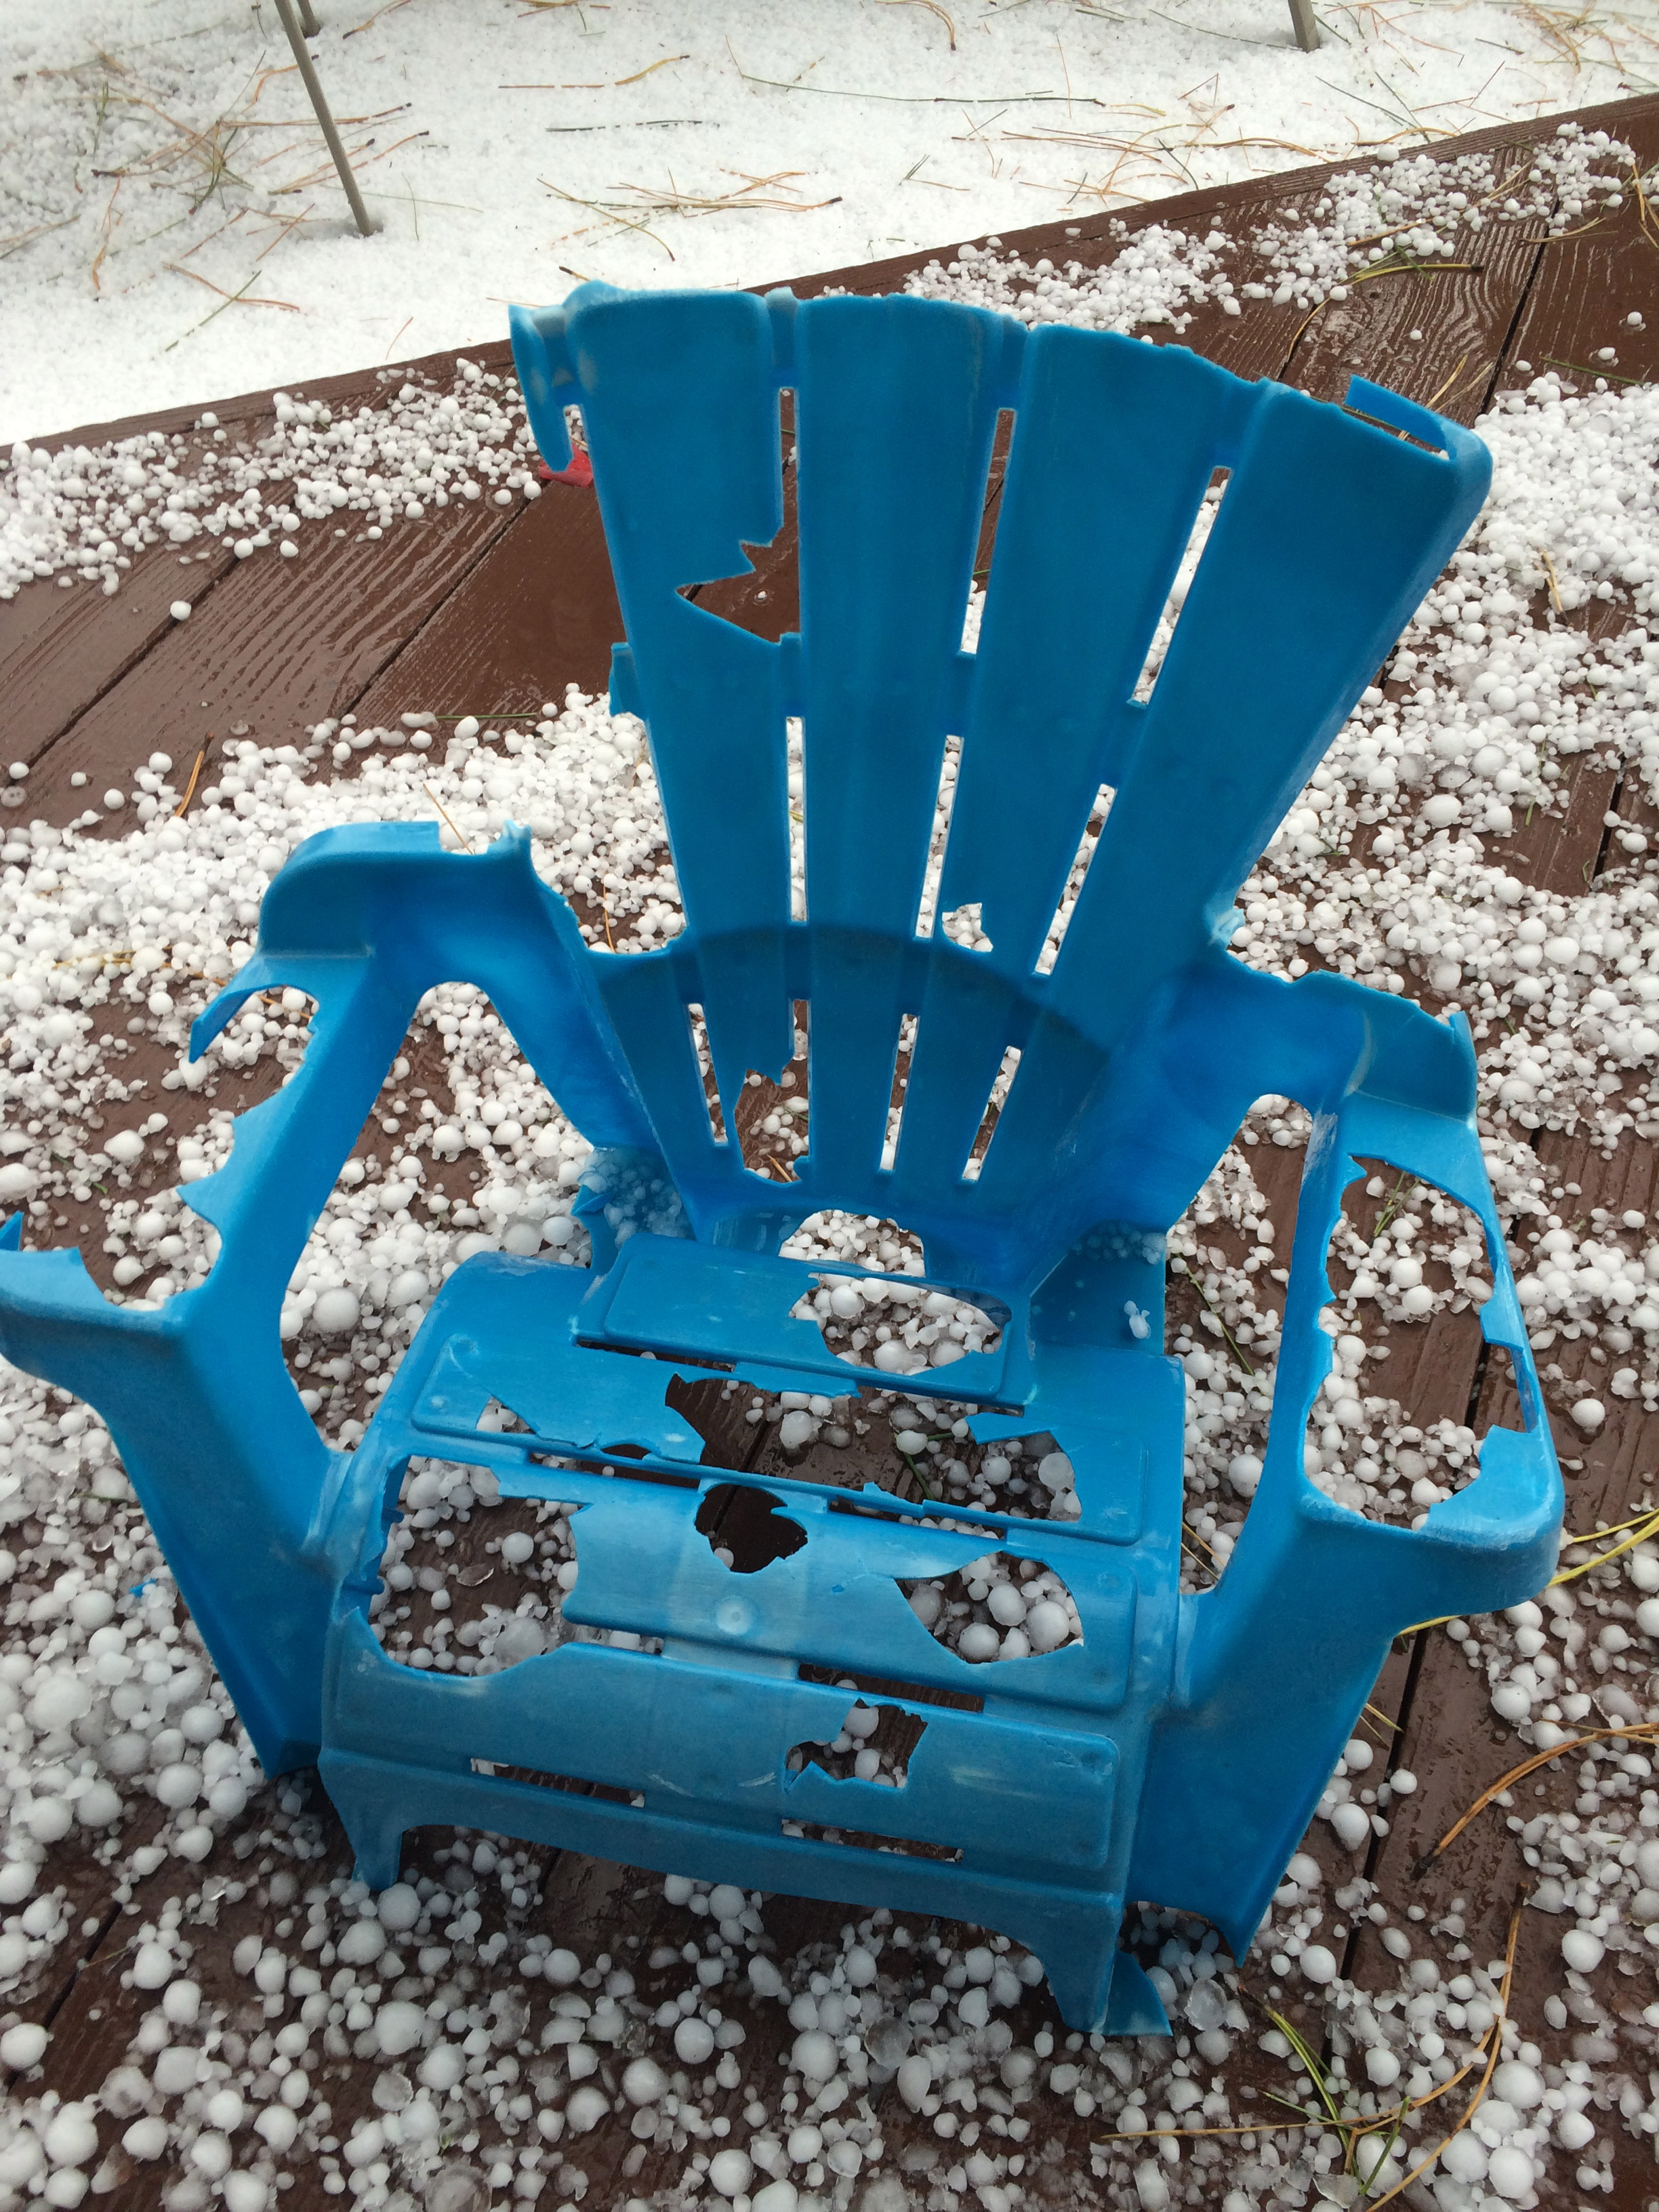 Kelly Vranesic of Highlands Ranch took this photo of a lawn chair that was destroyed by the hail.